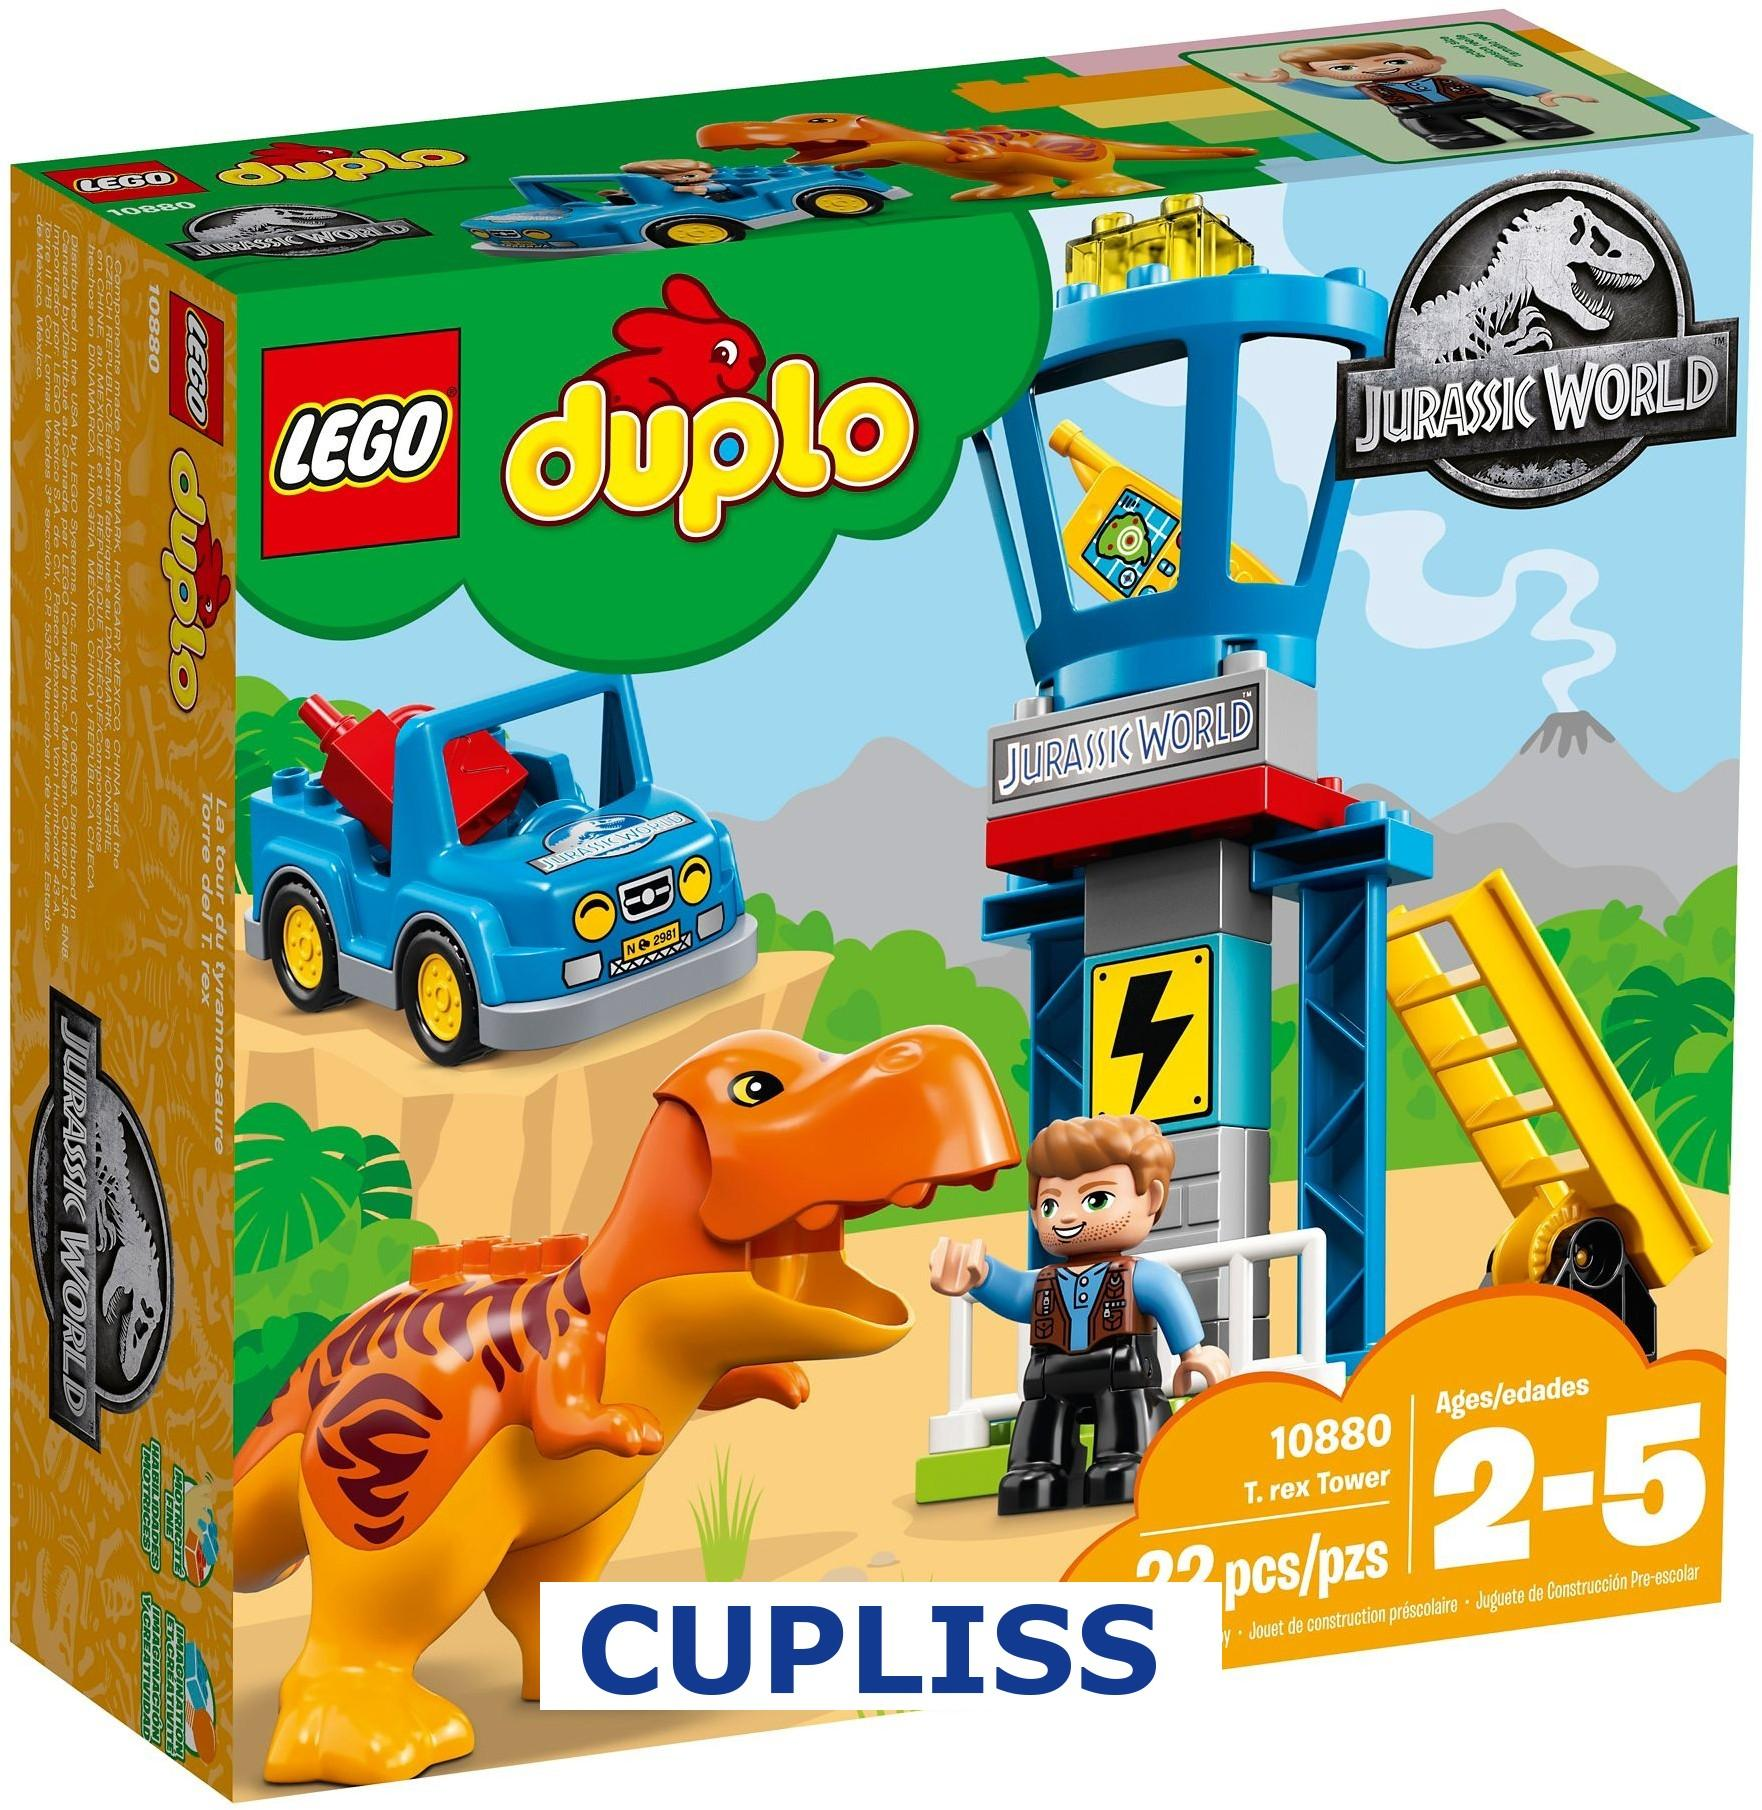 Buy Sell Cheapest Lego Duplo 10592 Best Quality Product Deals 5682 Fire Truck 10880 T Rex Tower